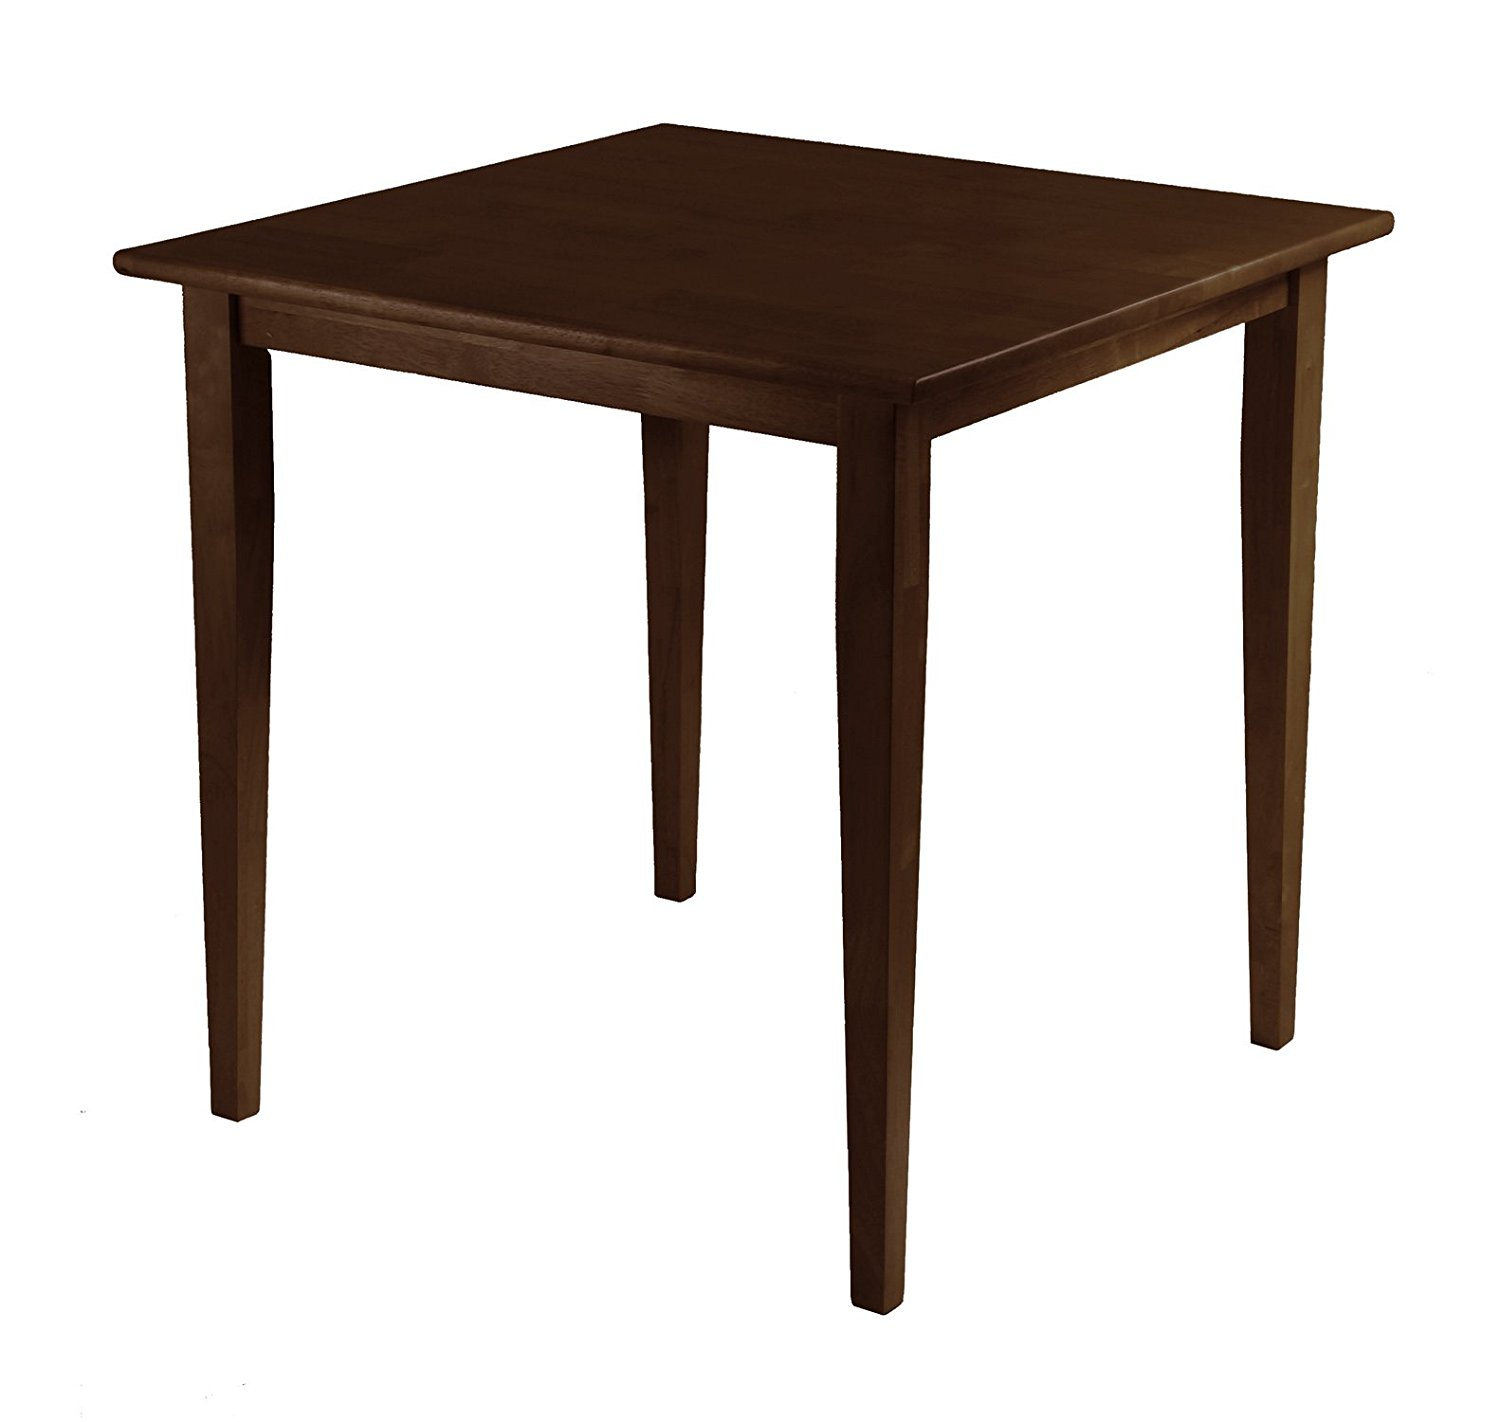 Winsome Wood Groveland Square Dining Table in Antique Walnut Finish